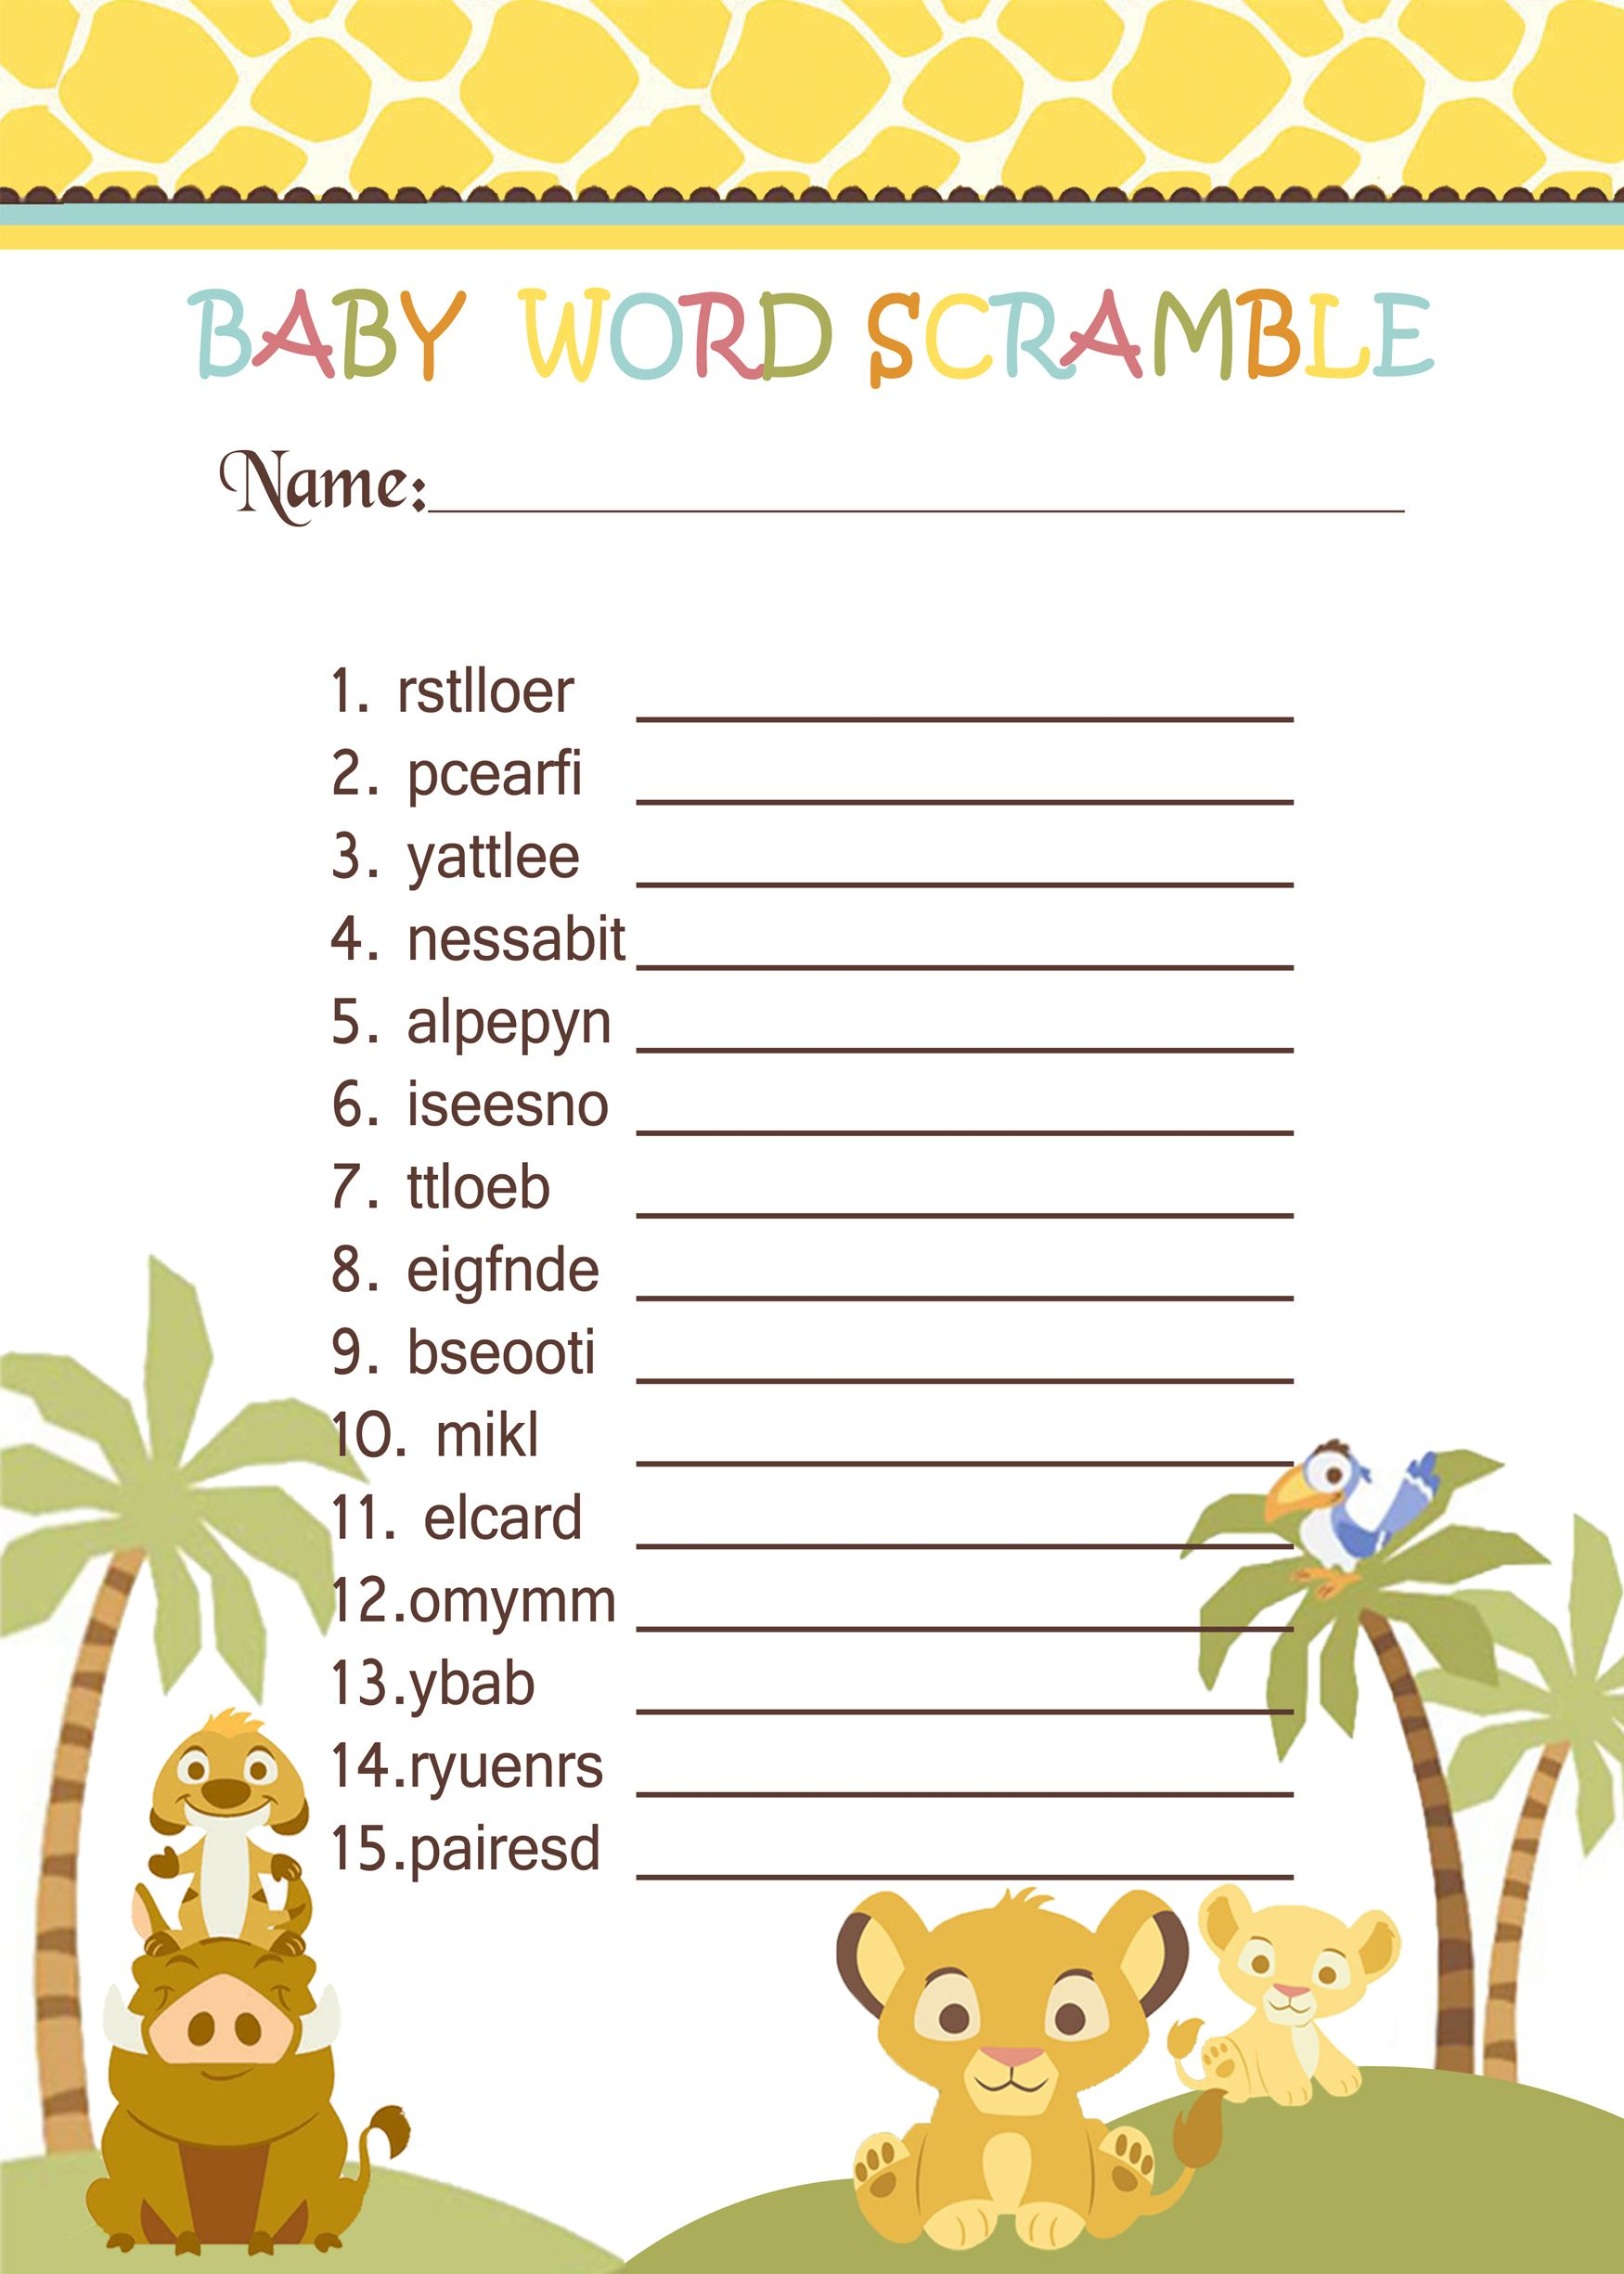 Simba Lion King Baby Shower Games Word Scramble $3 99